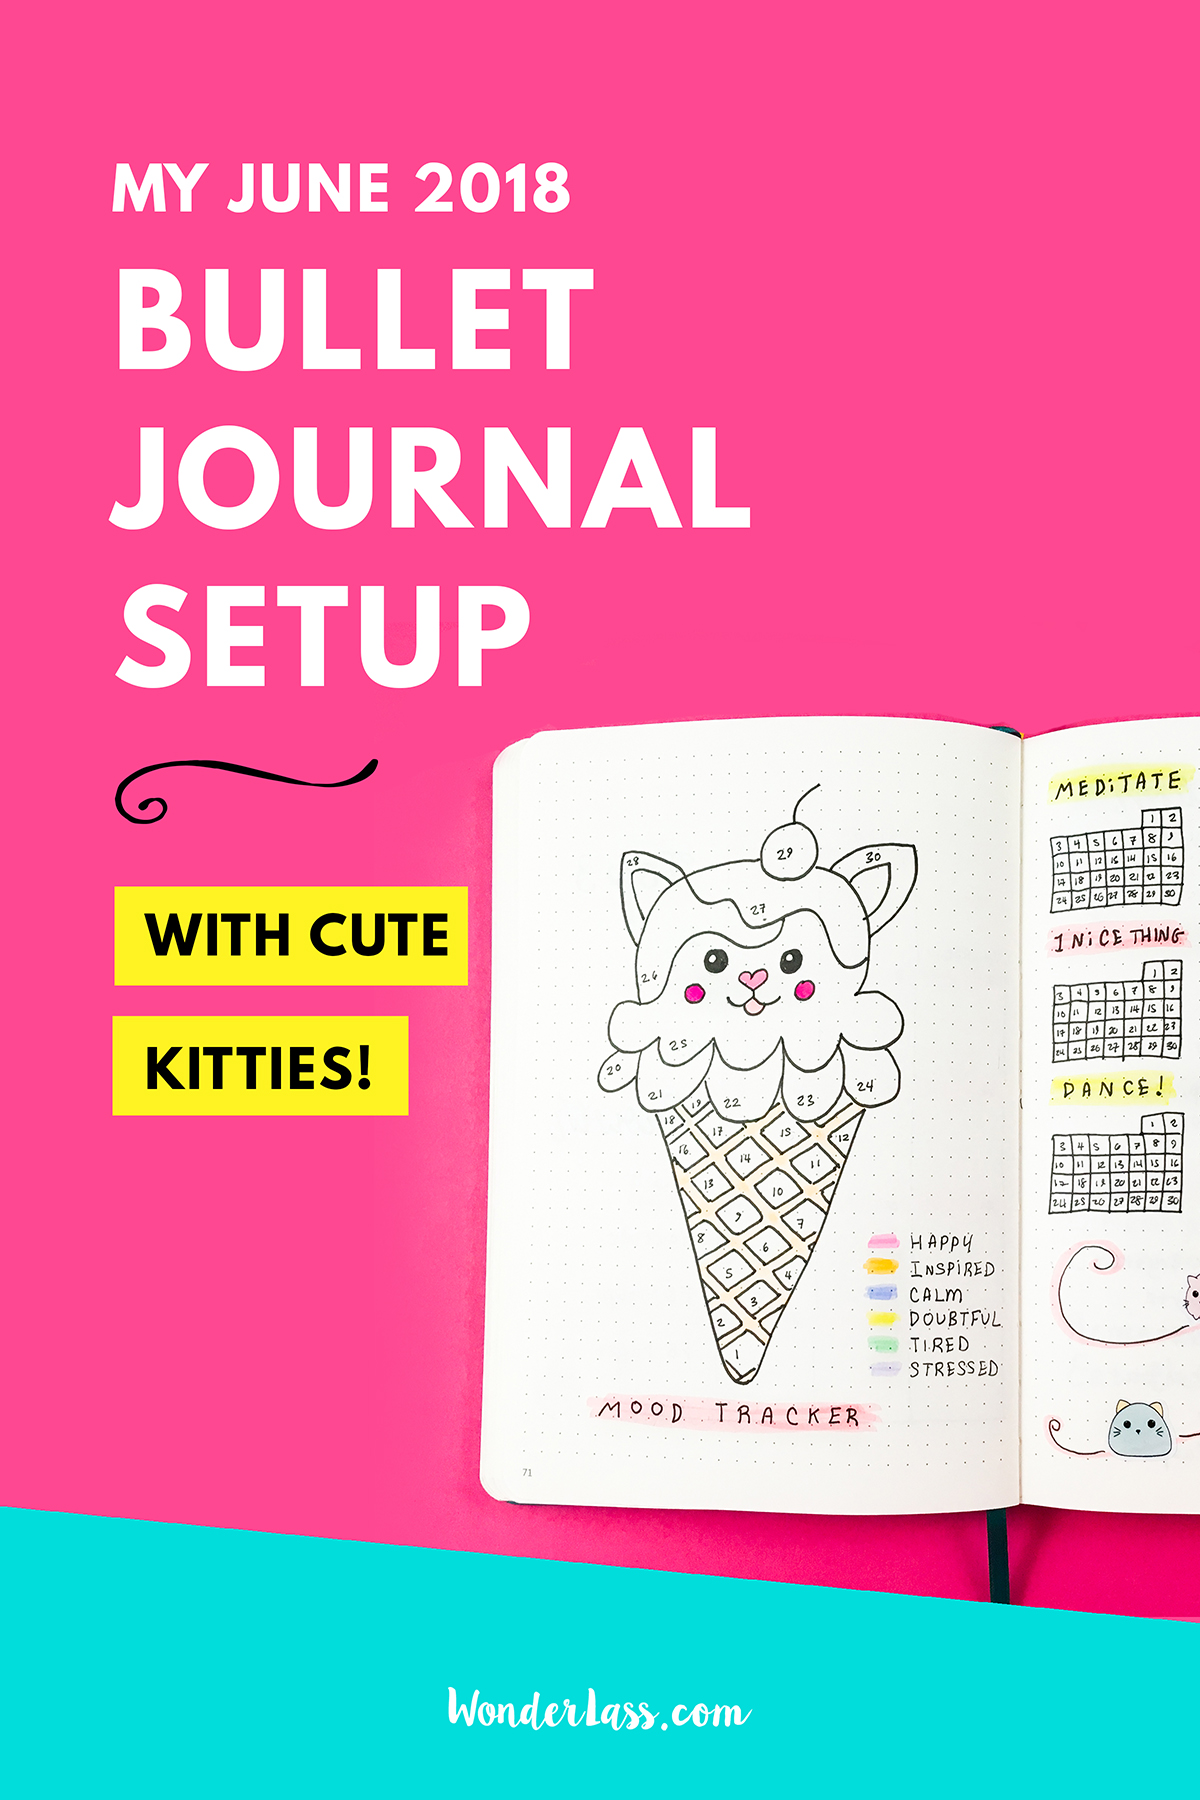 My June 2018 Bullet Journal Setup | Bullet journal theme, habit and mood trackers, and weekly spreads all inspired by kawaii kitties!